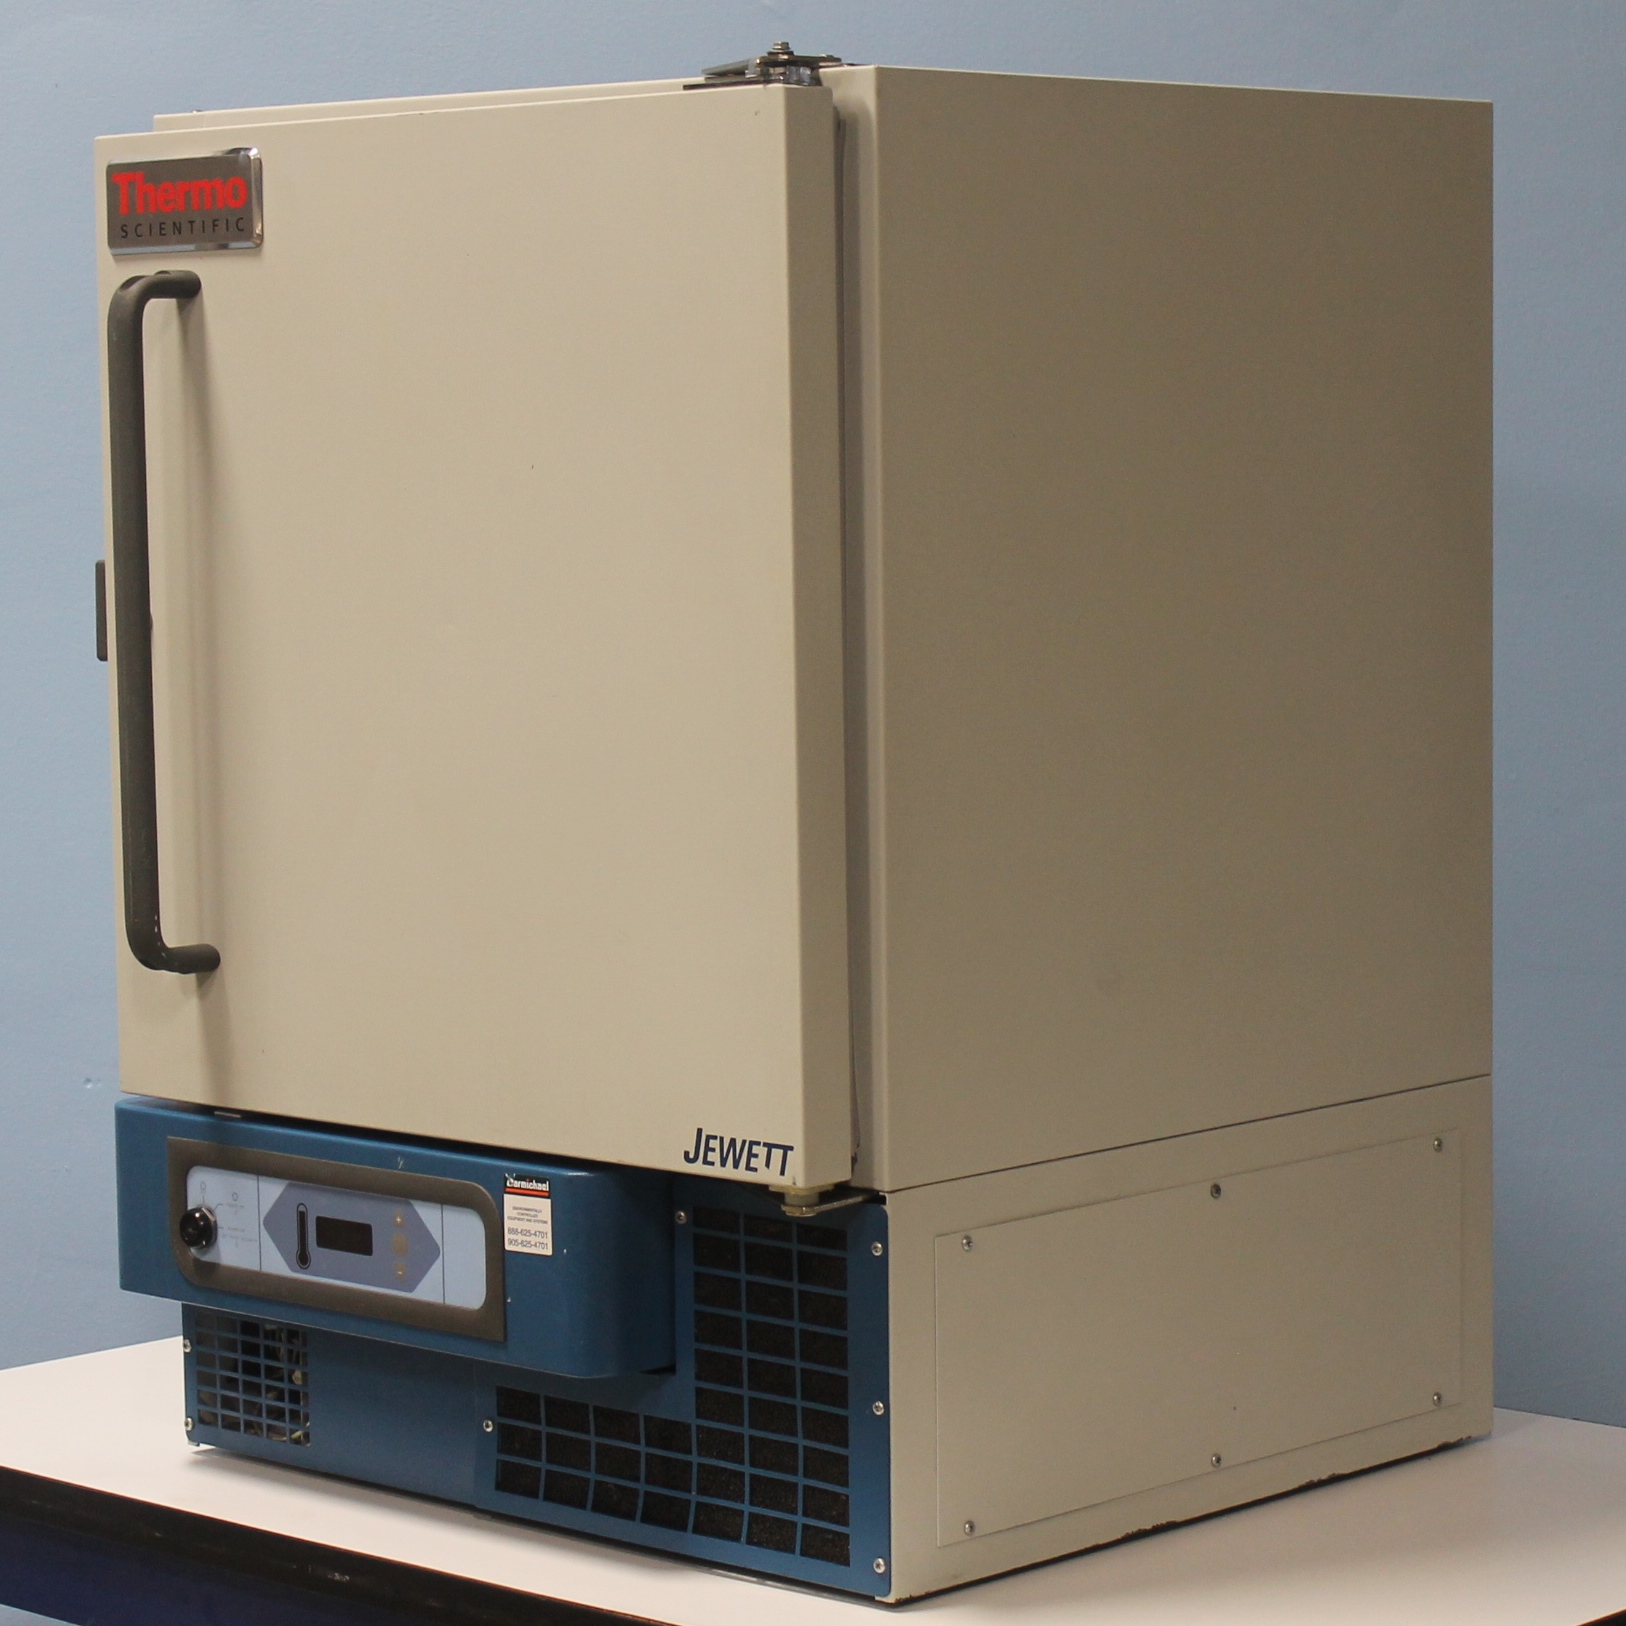 Thermo Scientific Jewett High-Performance Plasma Freezer Image